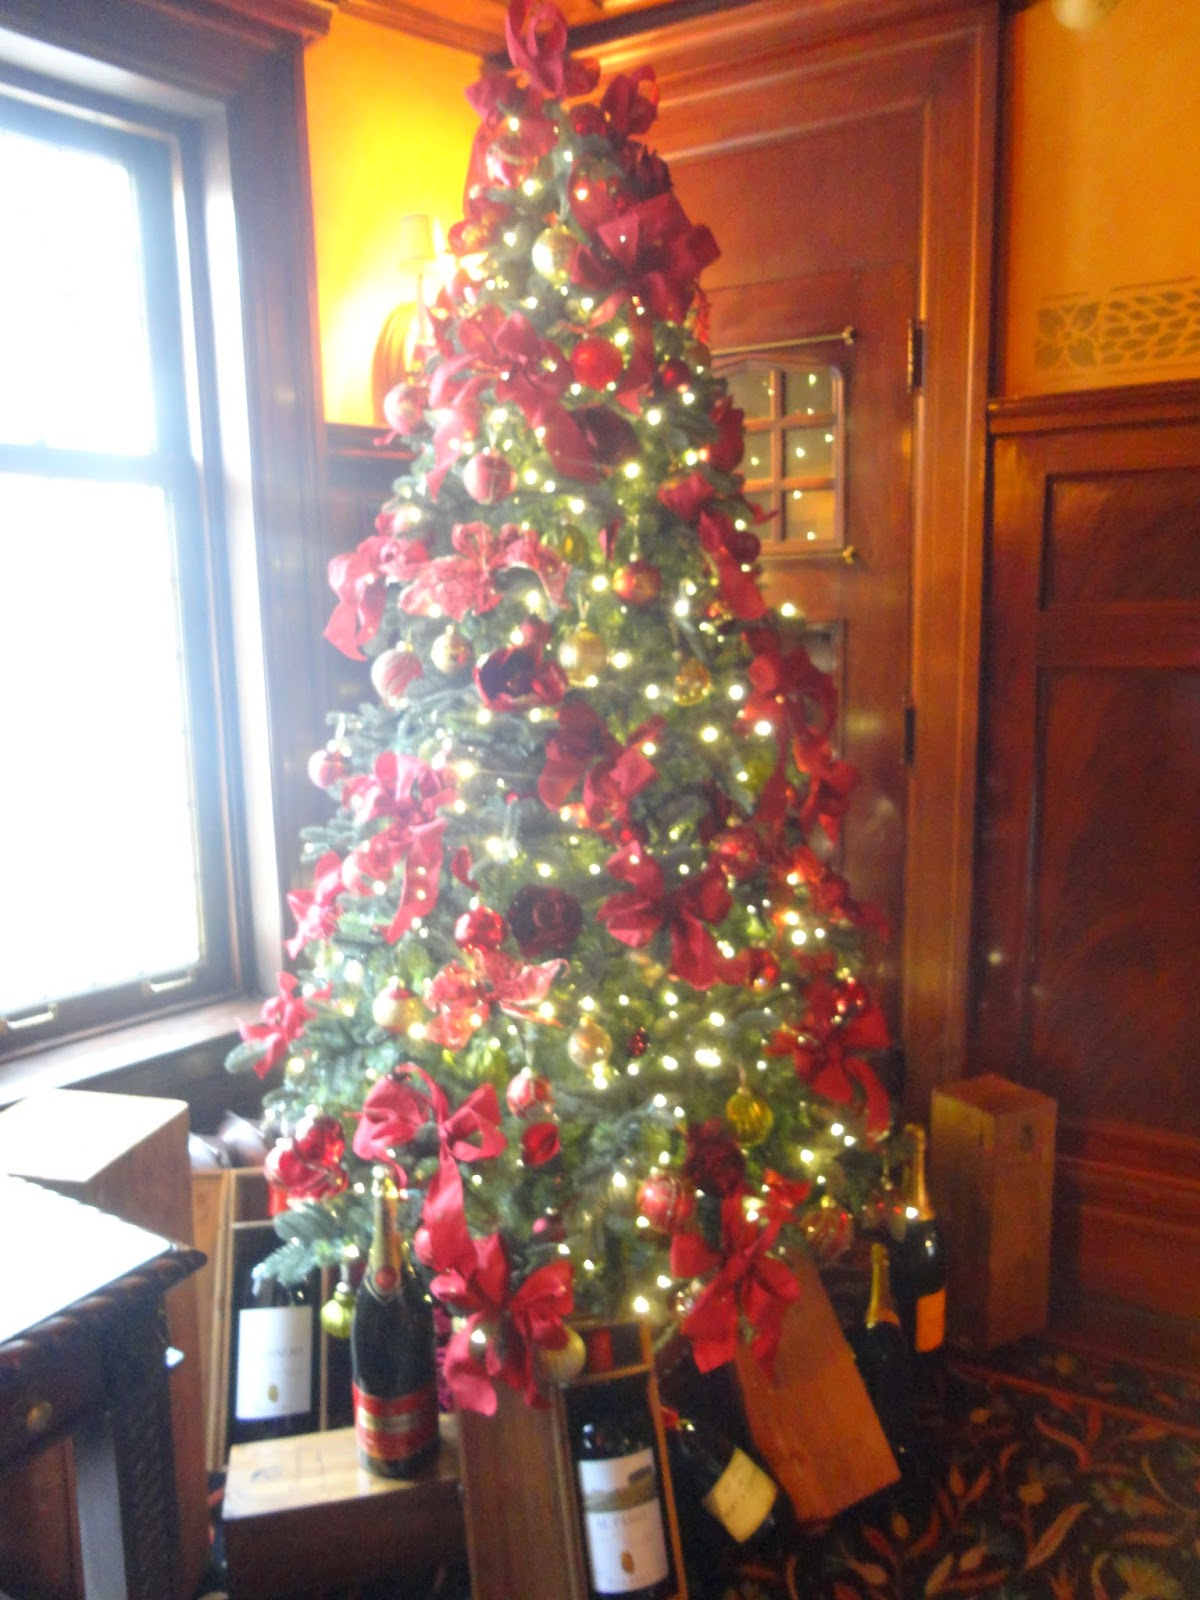 Christmas decorations at 529 Wellington - stay tuned for a future post about this historic building turned restaurant!